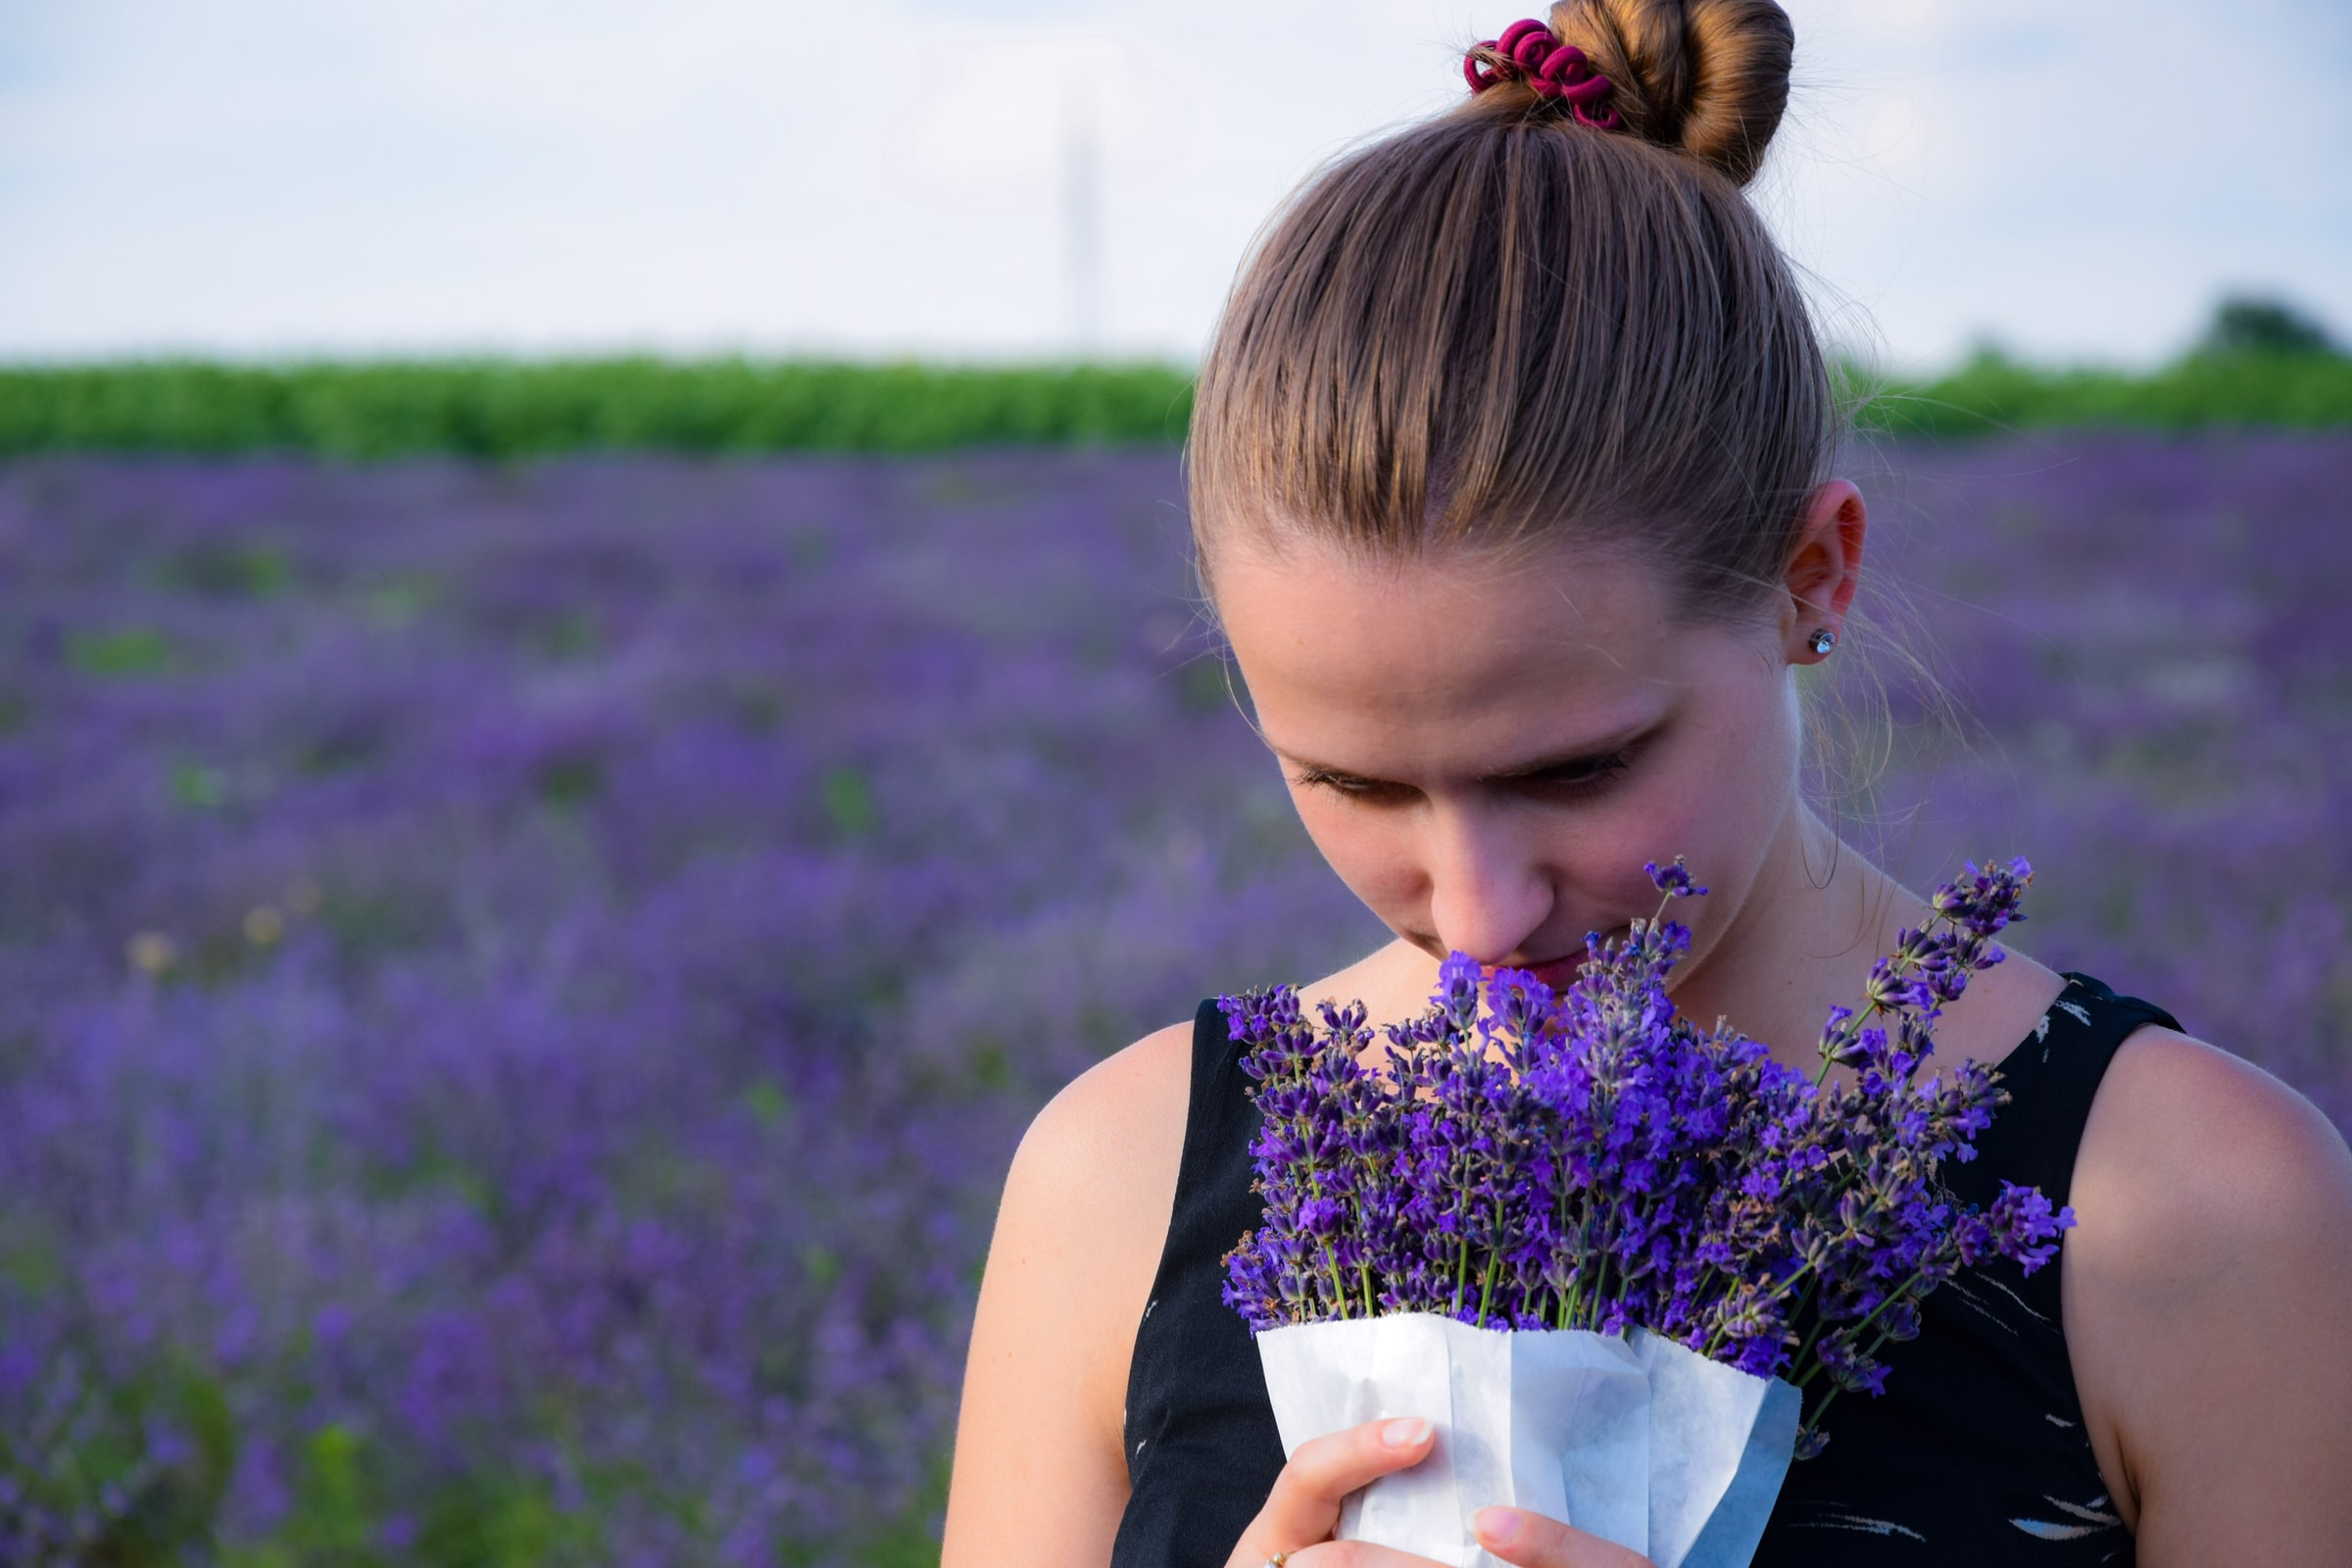 Smelling lavenders